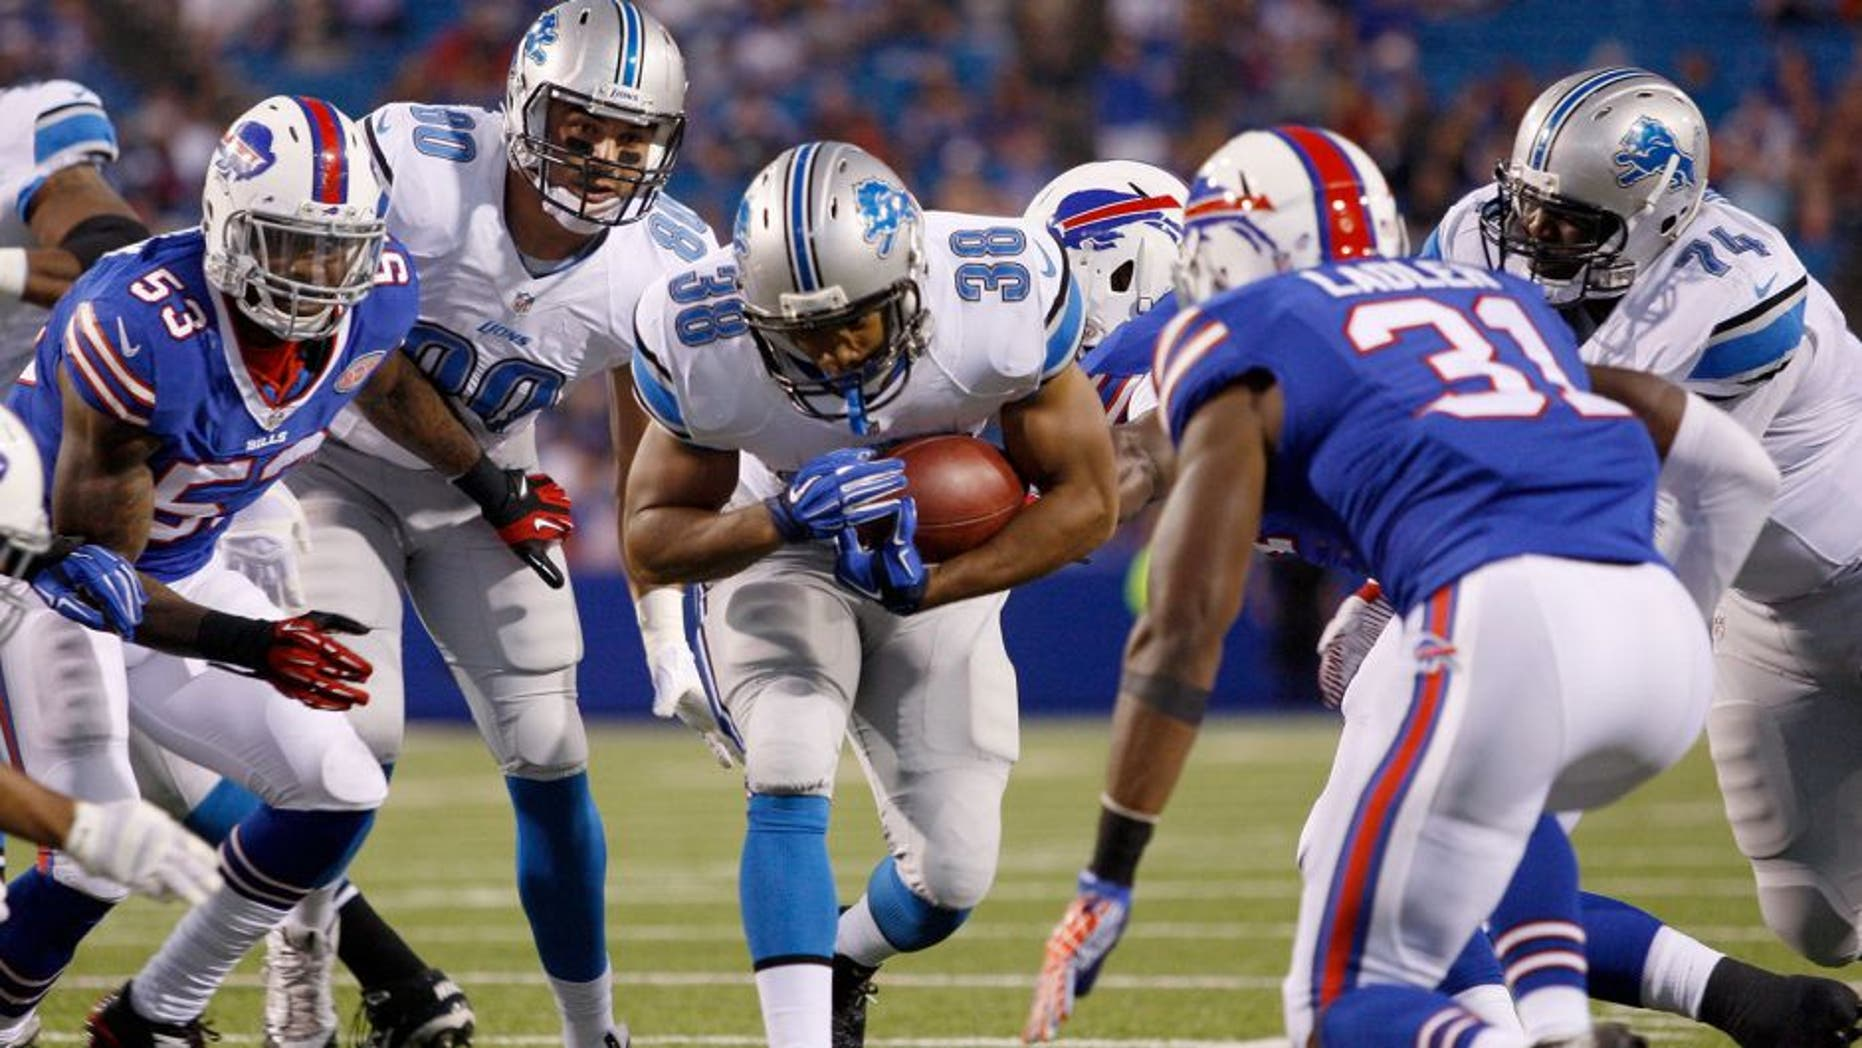 Aug 28, 2014; Orchard Park, NY, USA; Detroit Lions running back George Winn (38) runs the ball during the first half against the Buffalo Bills at Ralph Wilson Stadium. Mandatory Credit: Timothy T. Ludwig-USA TODAY Sports